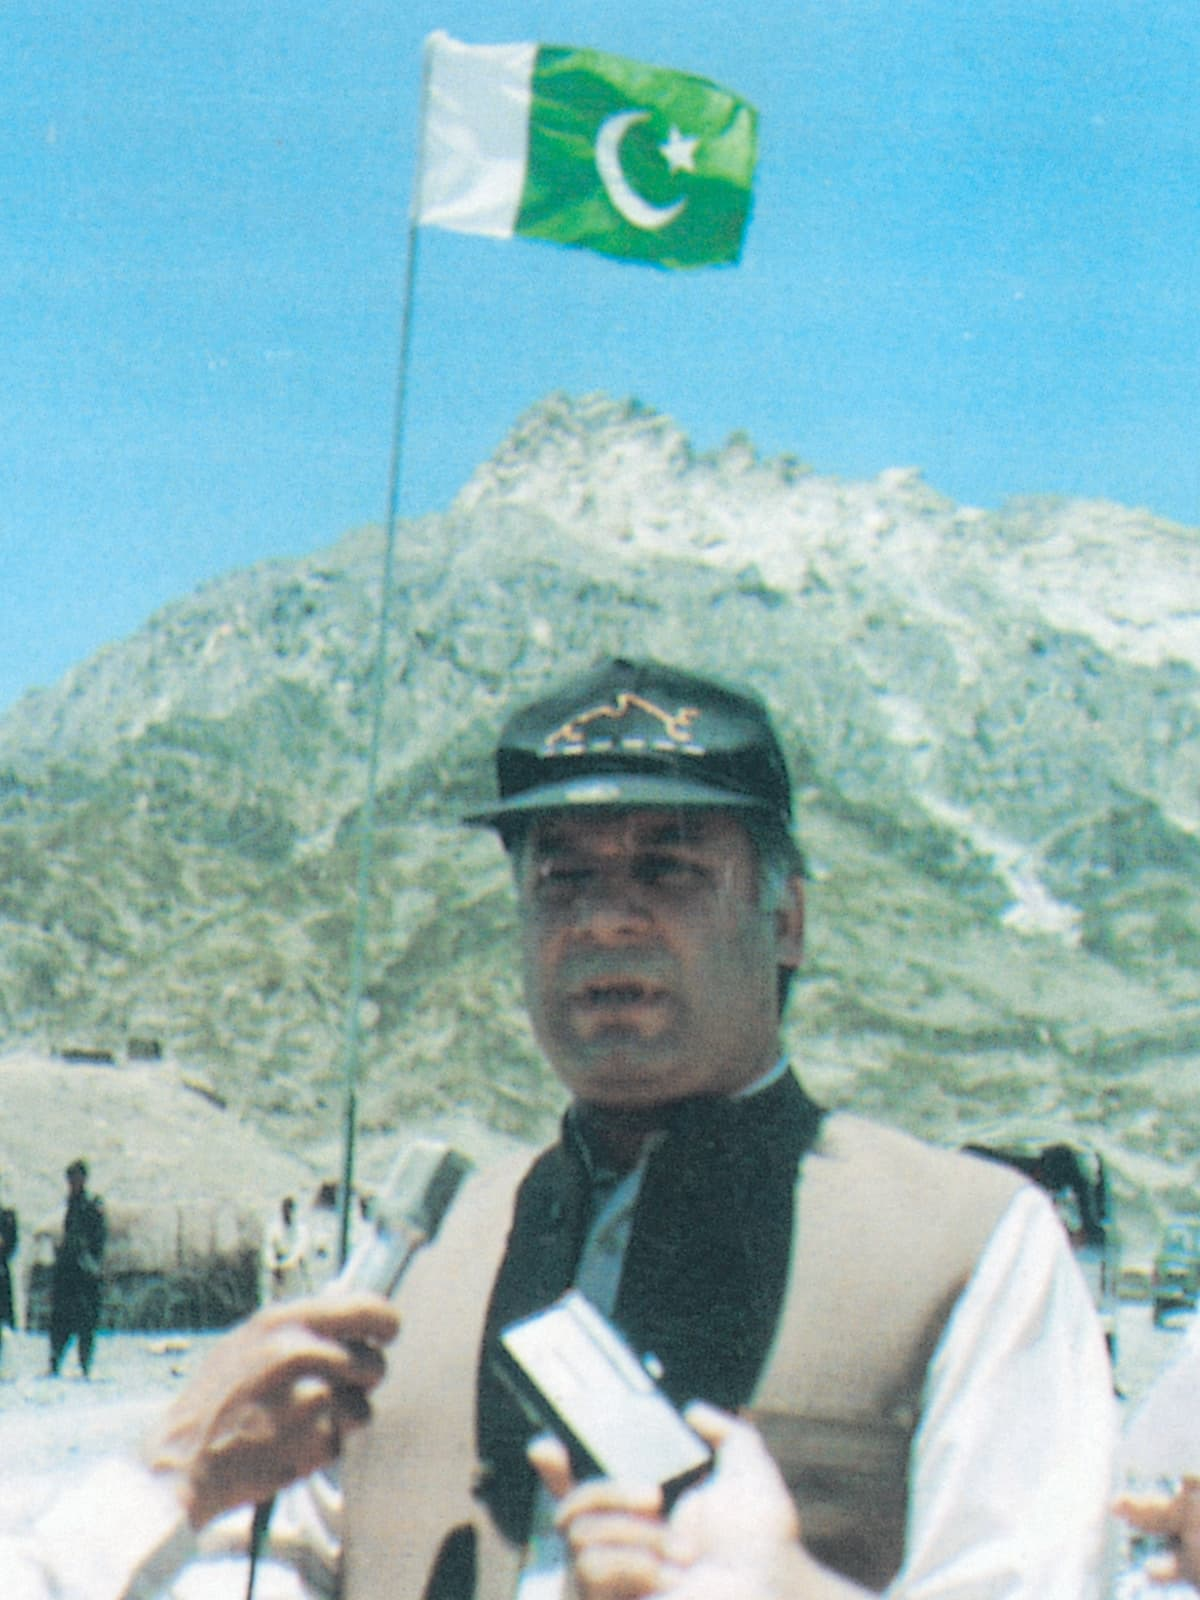 Prime Minister Mohammad Nawaz Sharif at the site of Pakistan's nuclear test | White Star